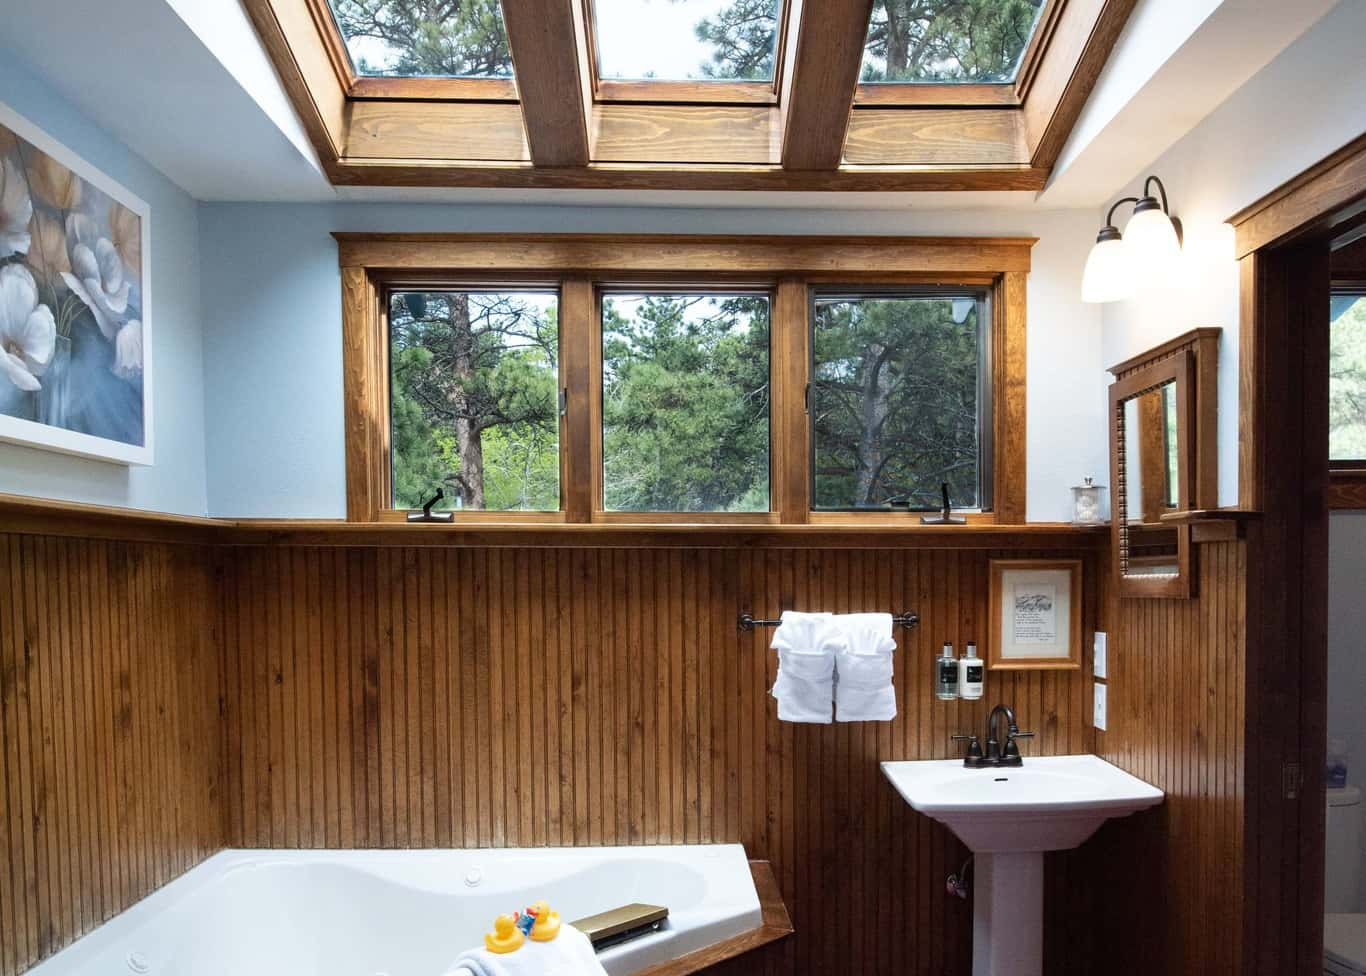 bathroom with skylight and windows